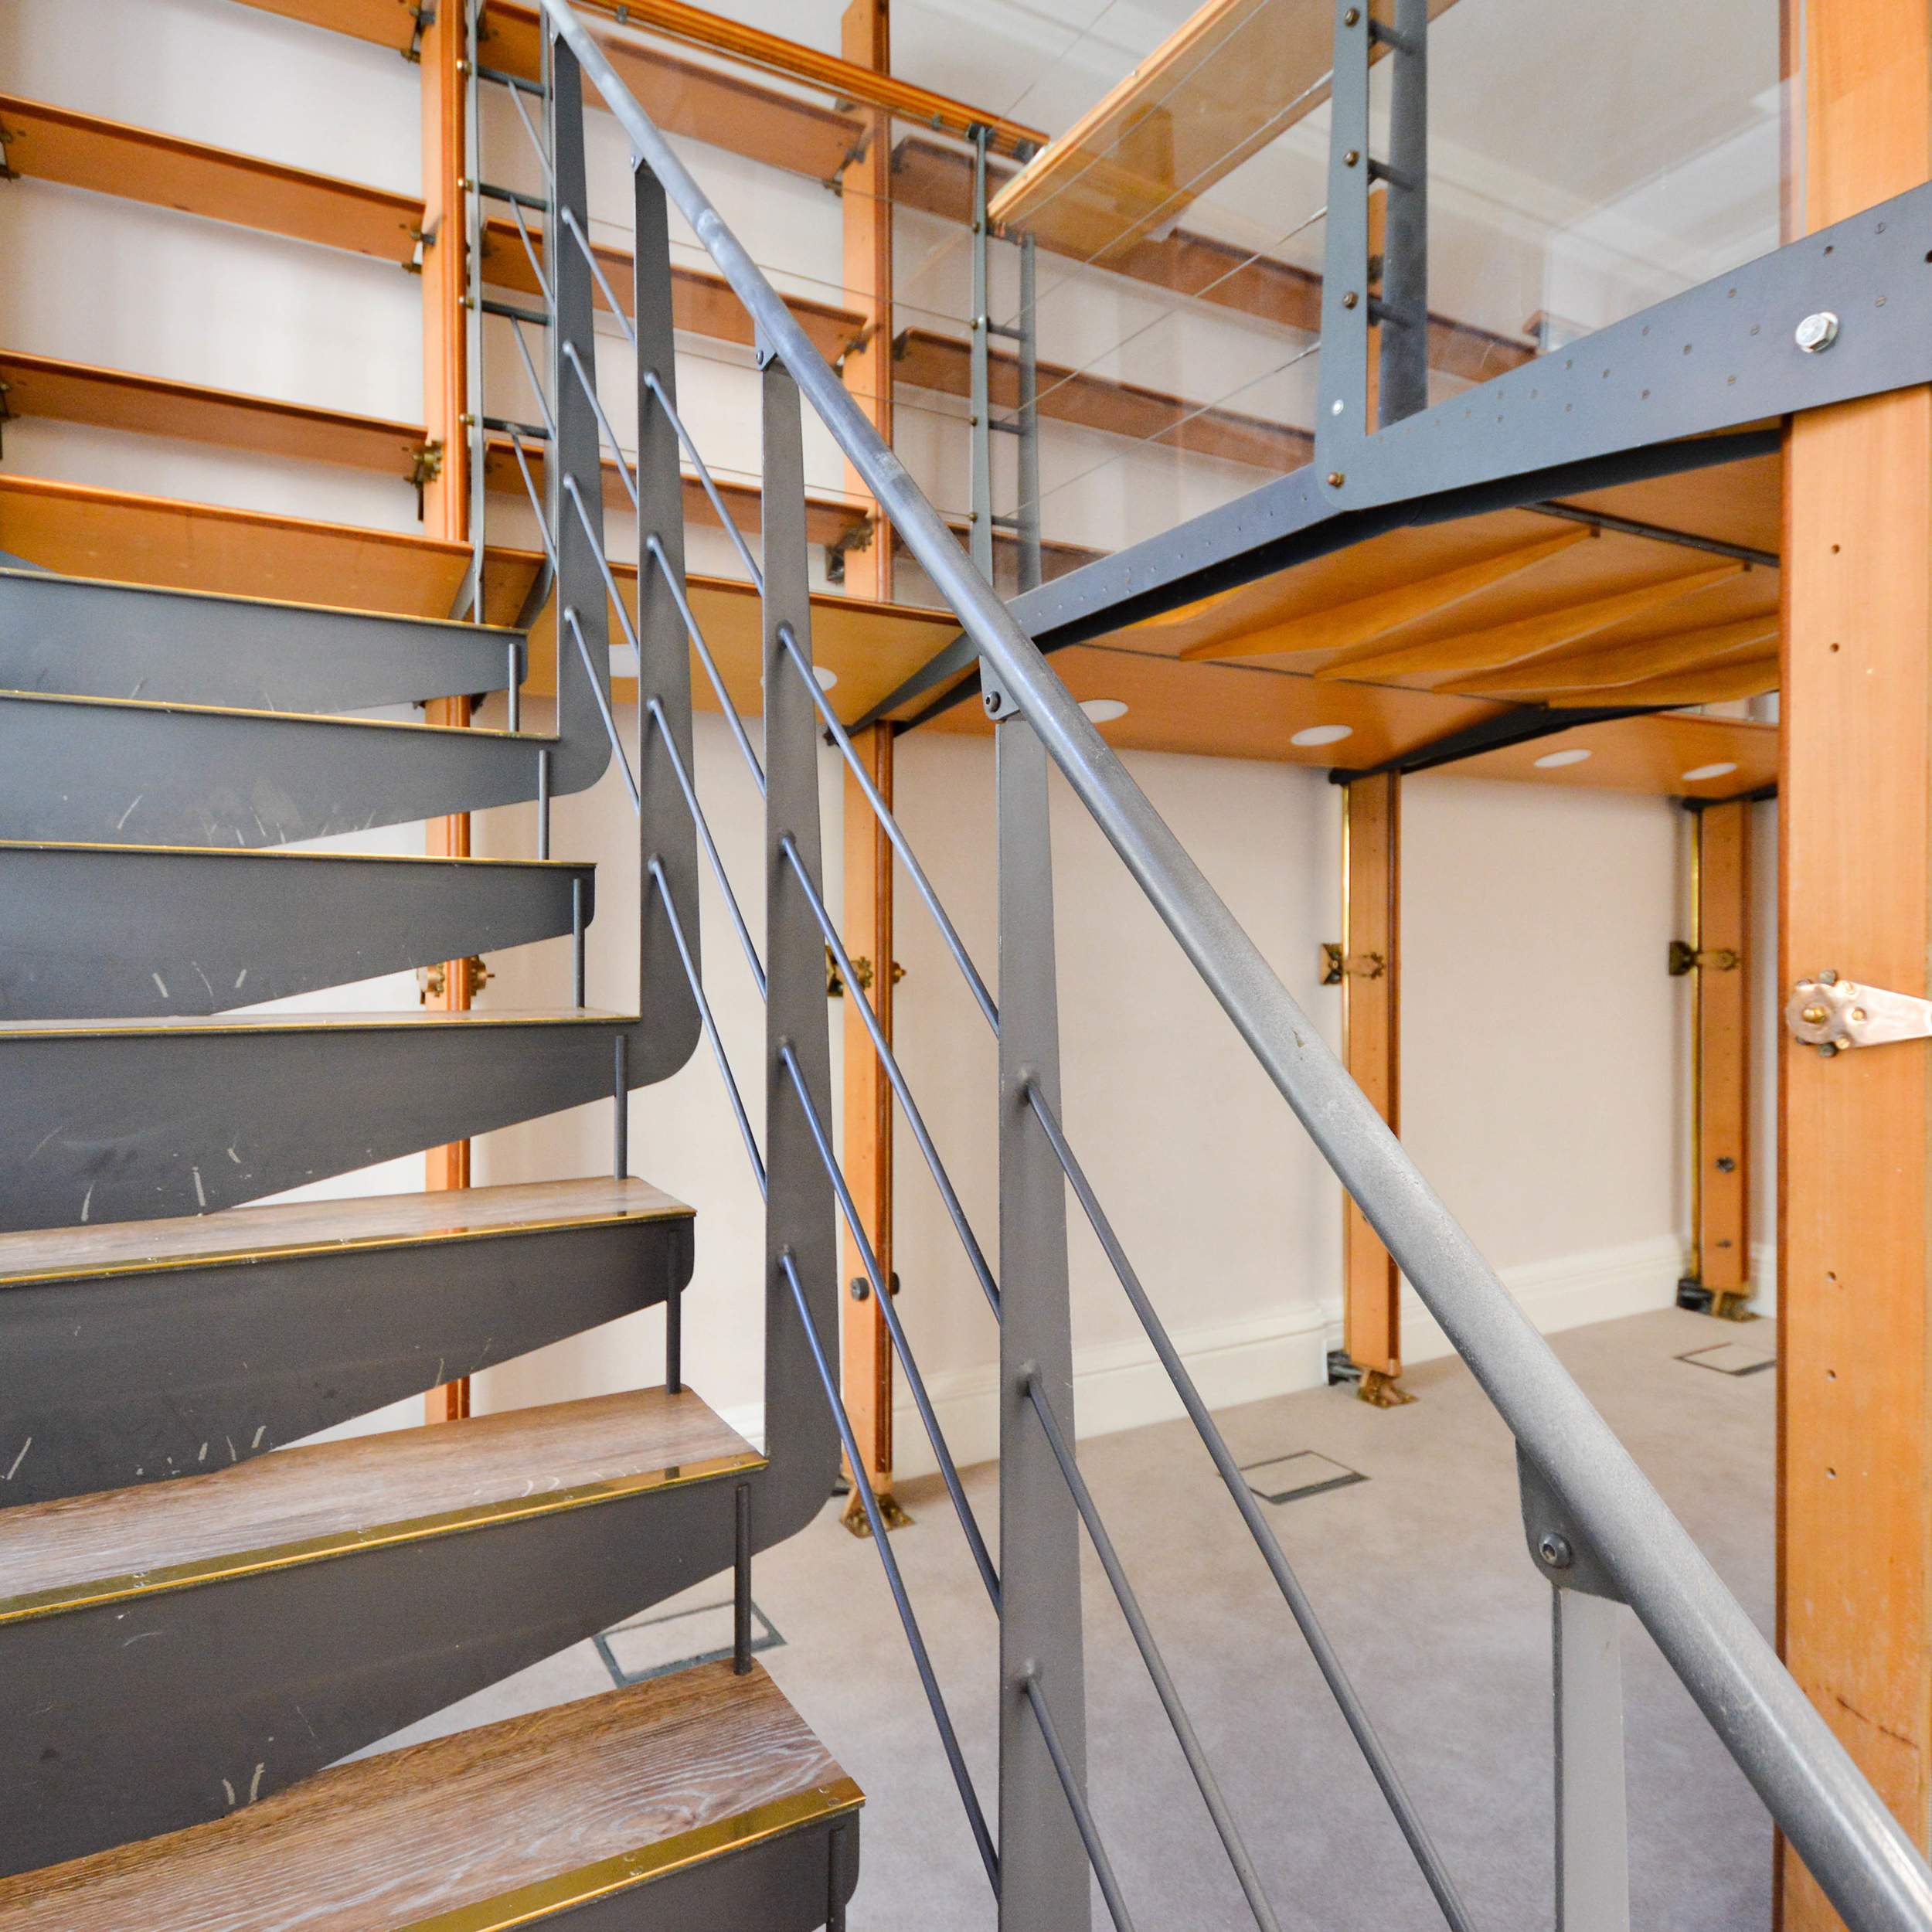 Modern metal staircase with wooden features inside a building renovation